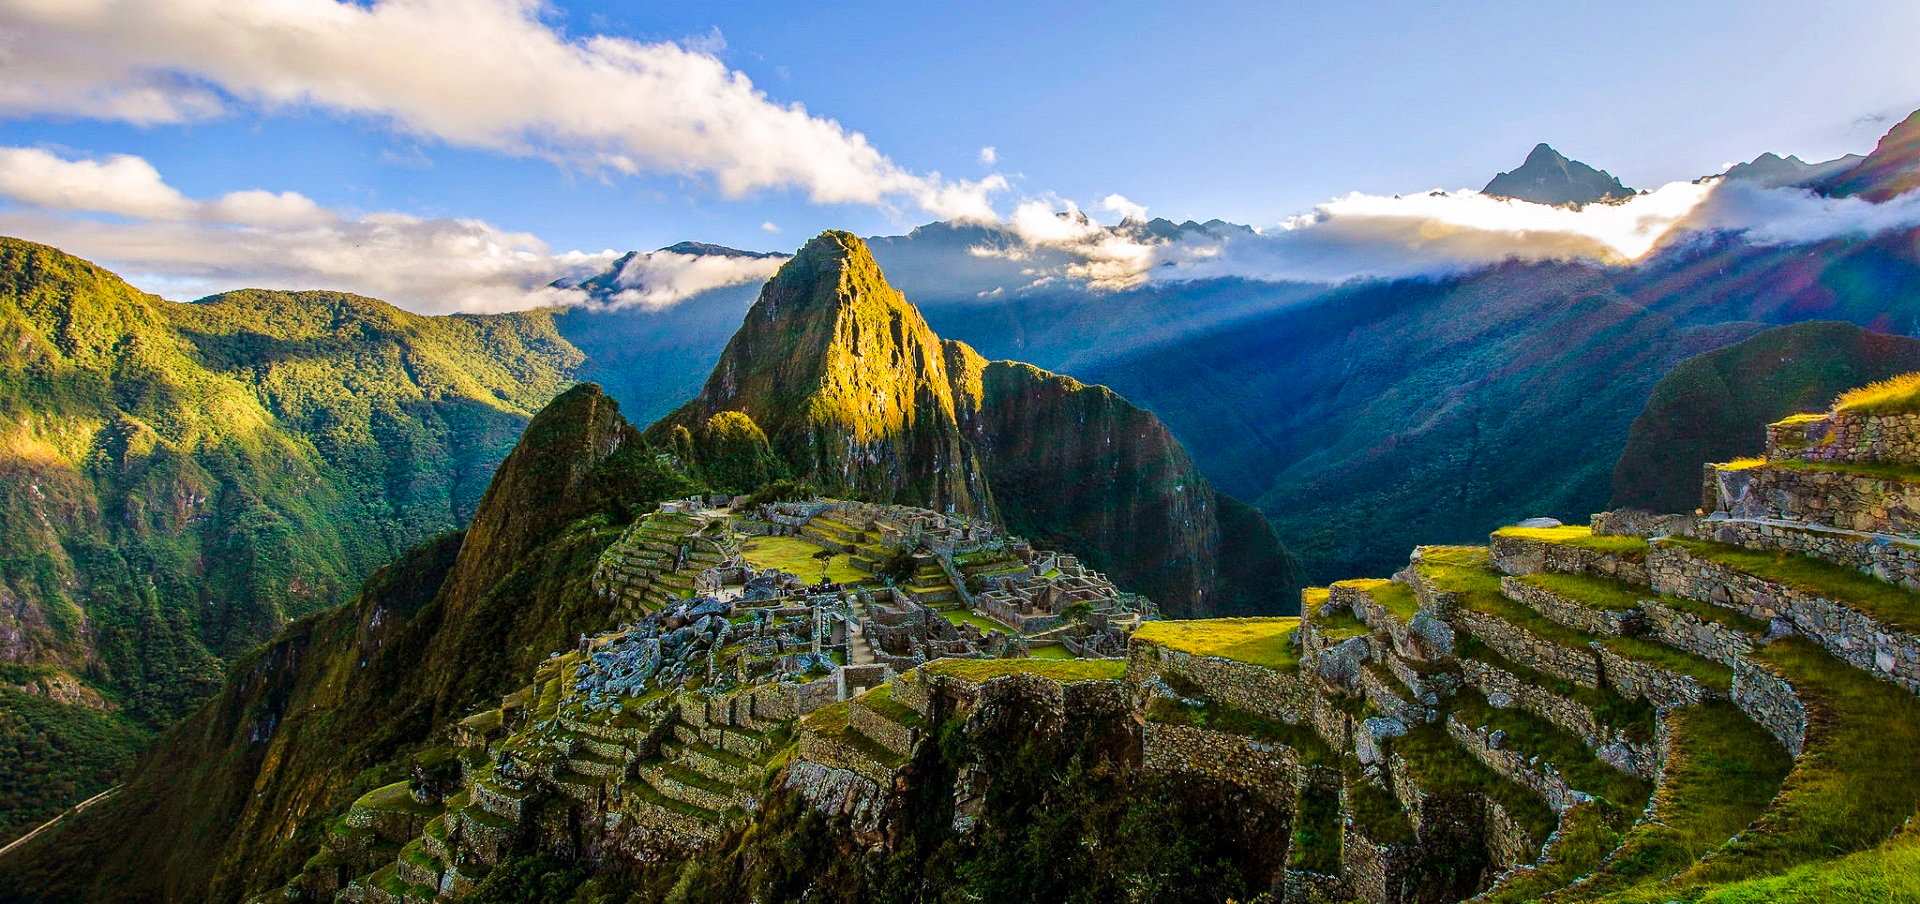 How much does it cost to trek to Machu Picchu?